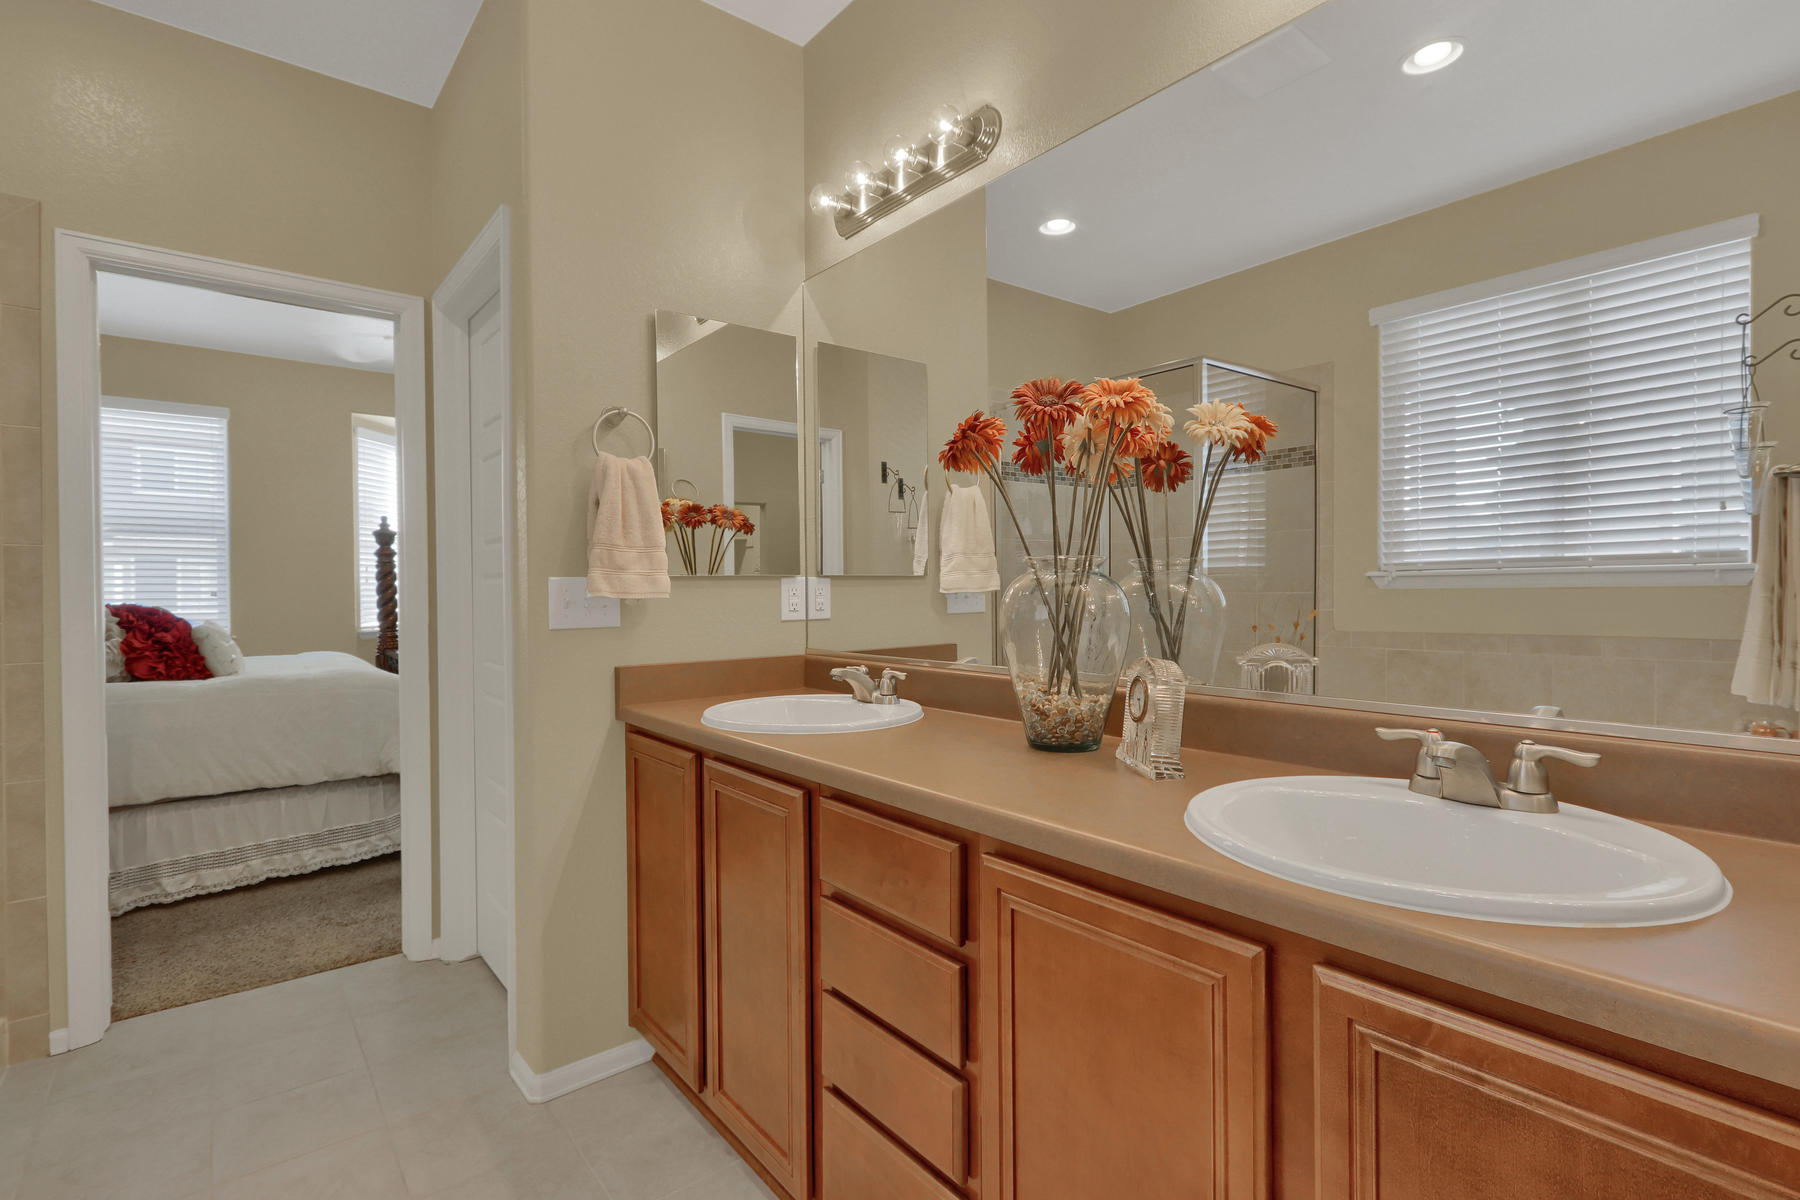 5181 Delphinium Cir Brighton-020-025-Bathroom-MLS_Size.jpg